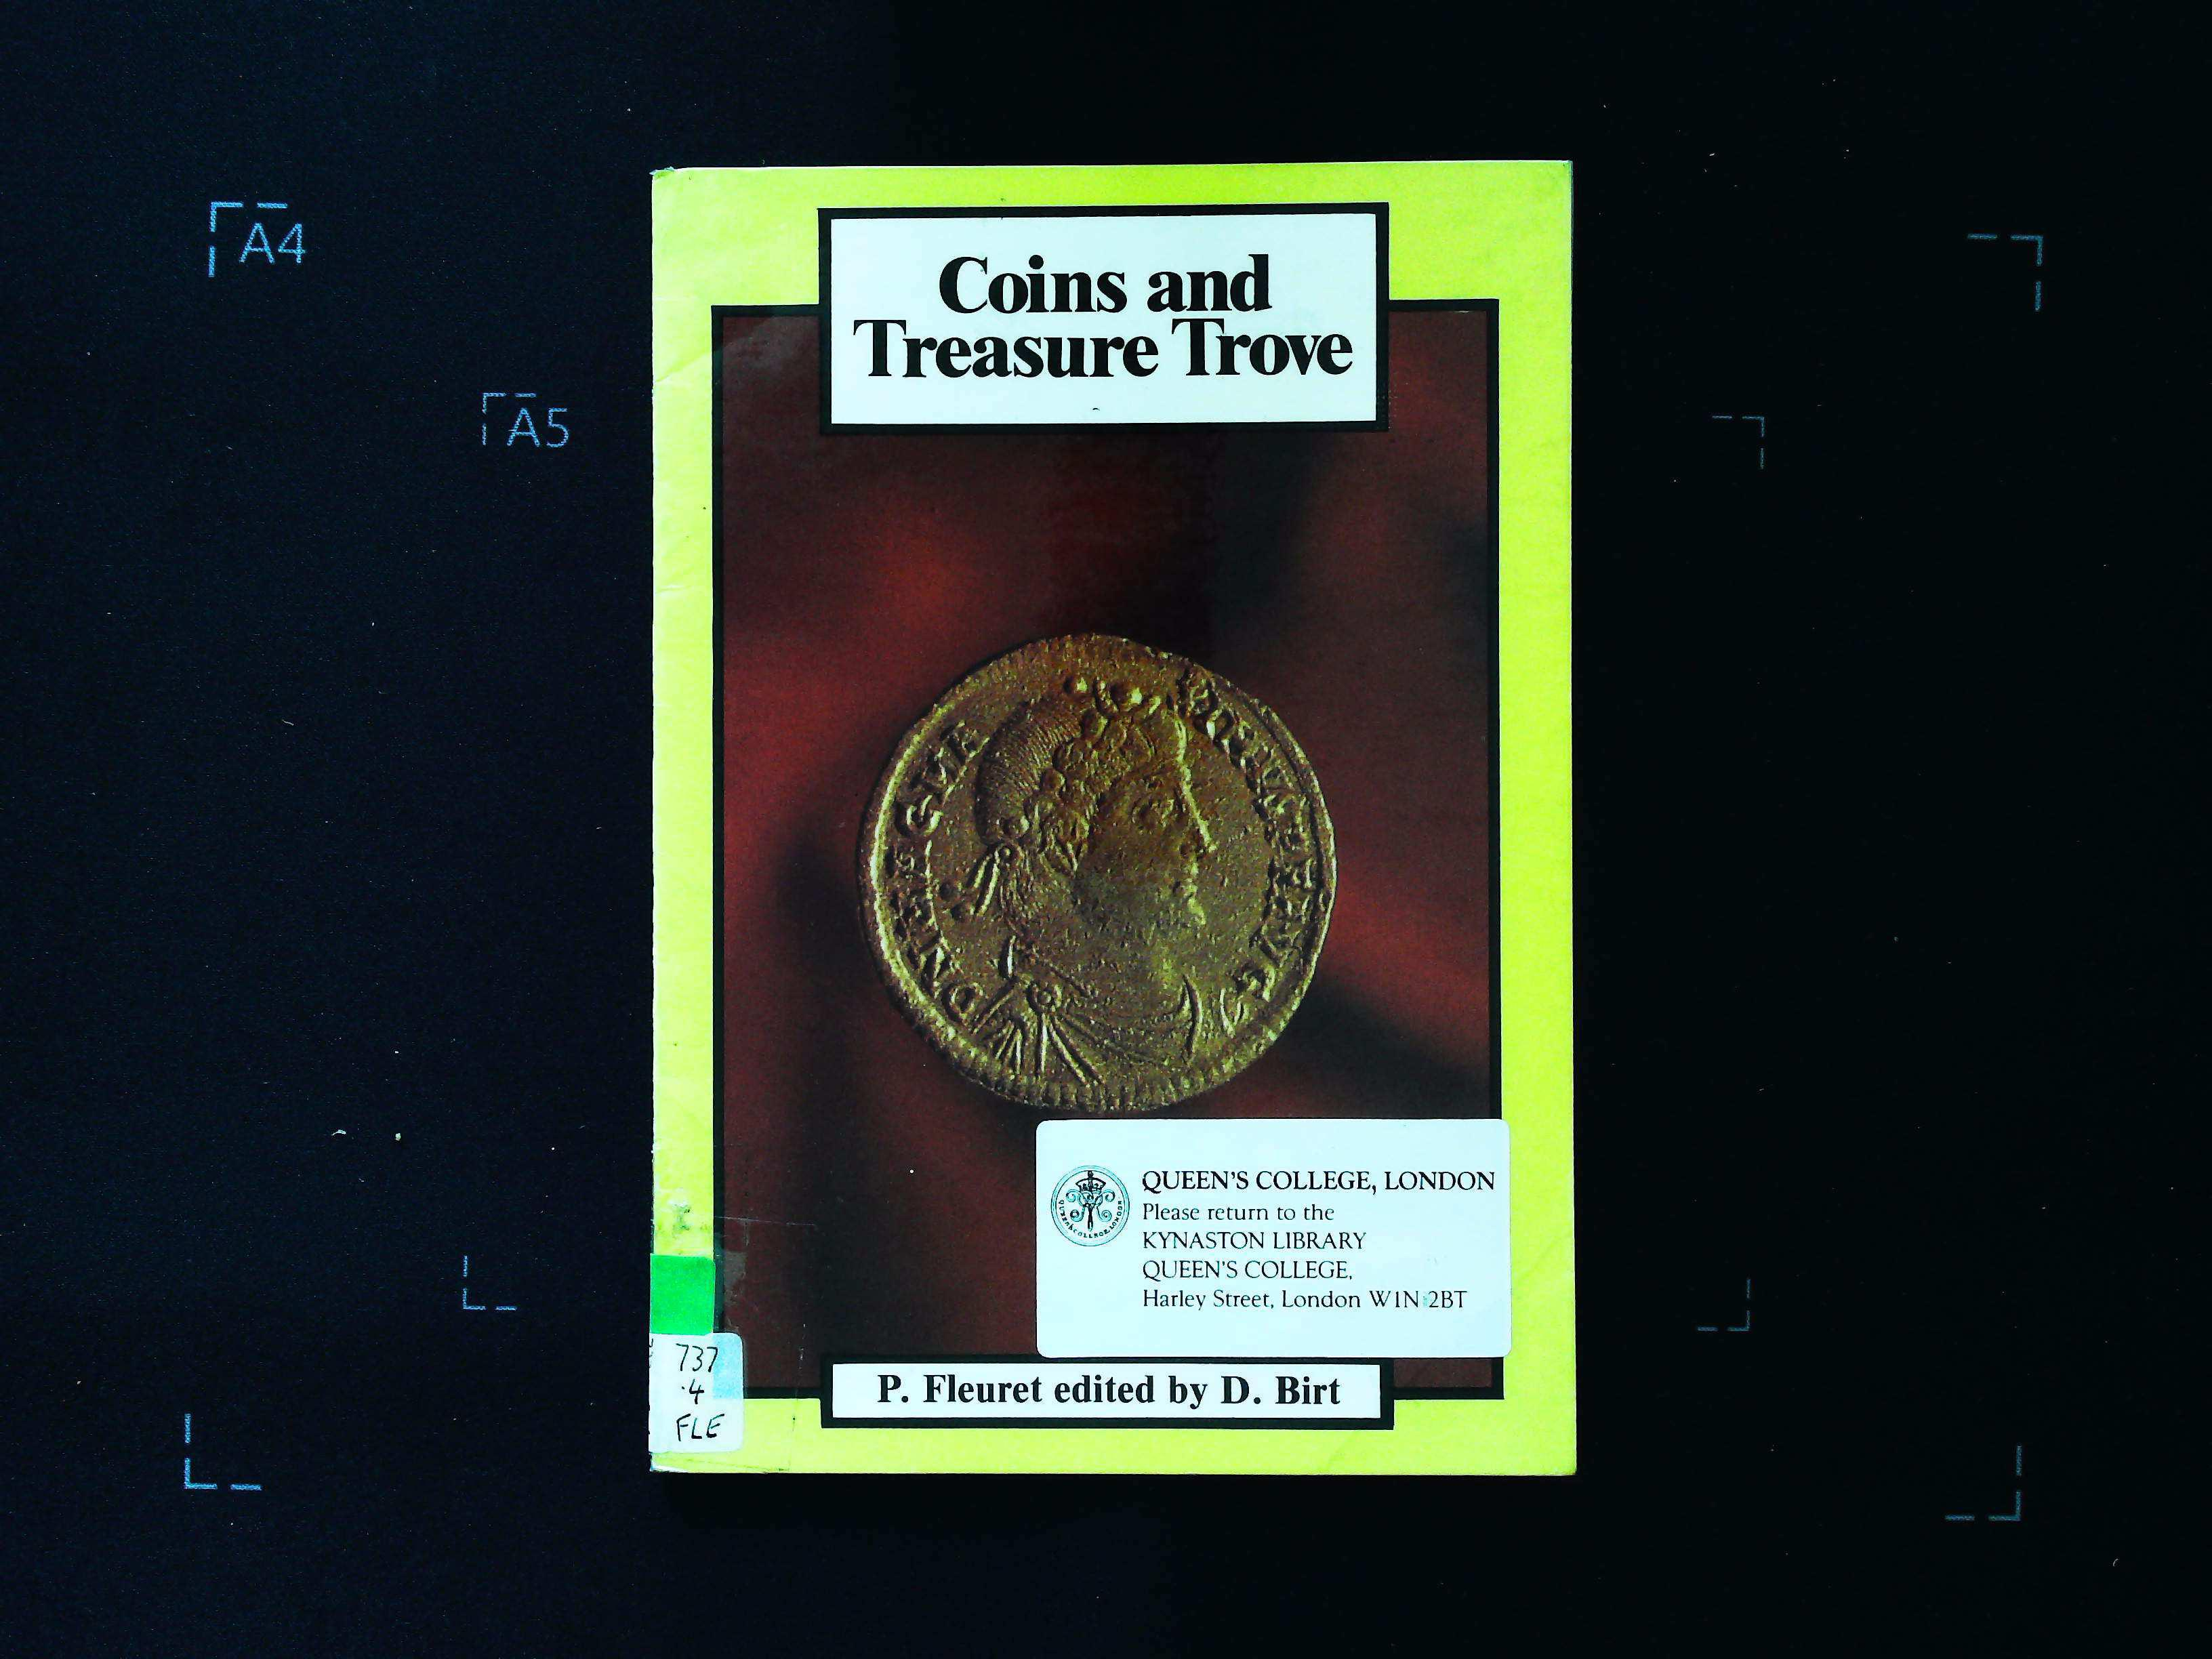 Coins and Treasure Trove P. Fleuret edited by D. Birt softback book 16 pages Longman ISBN 0 582